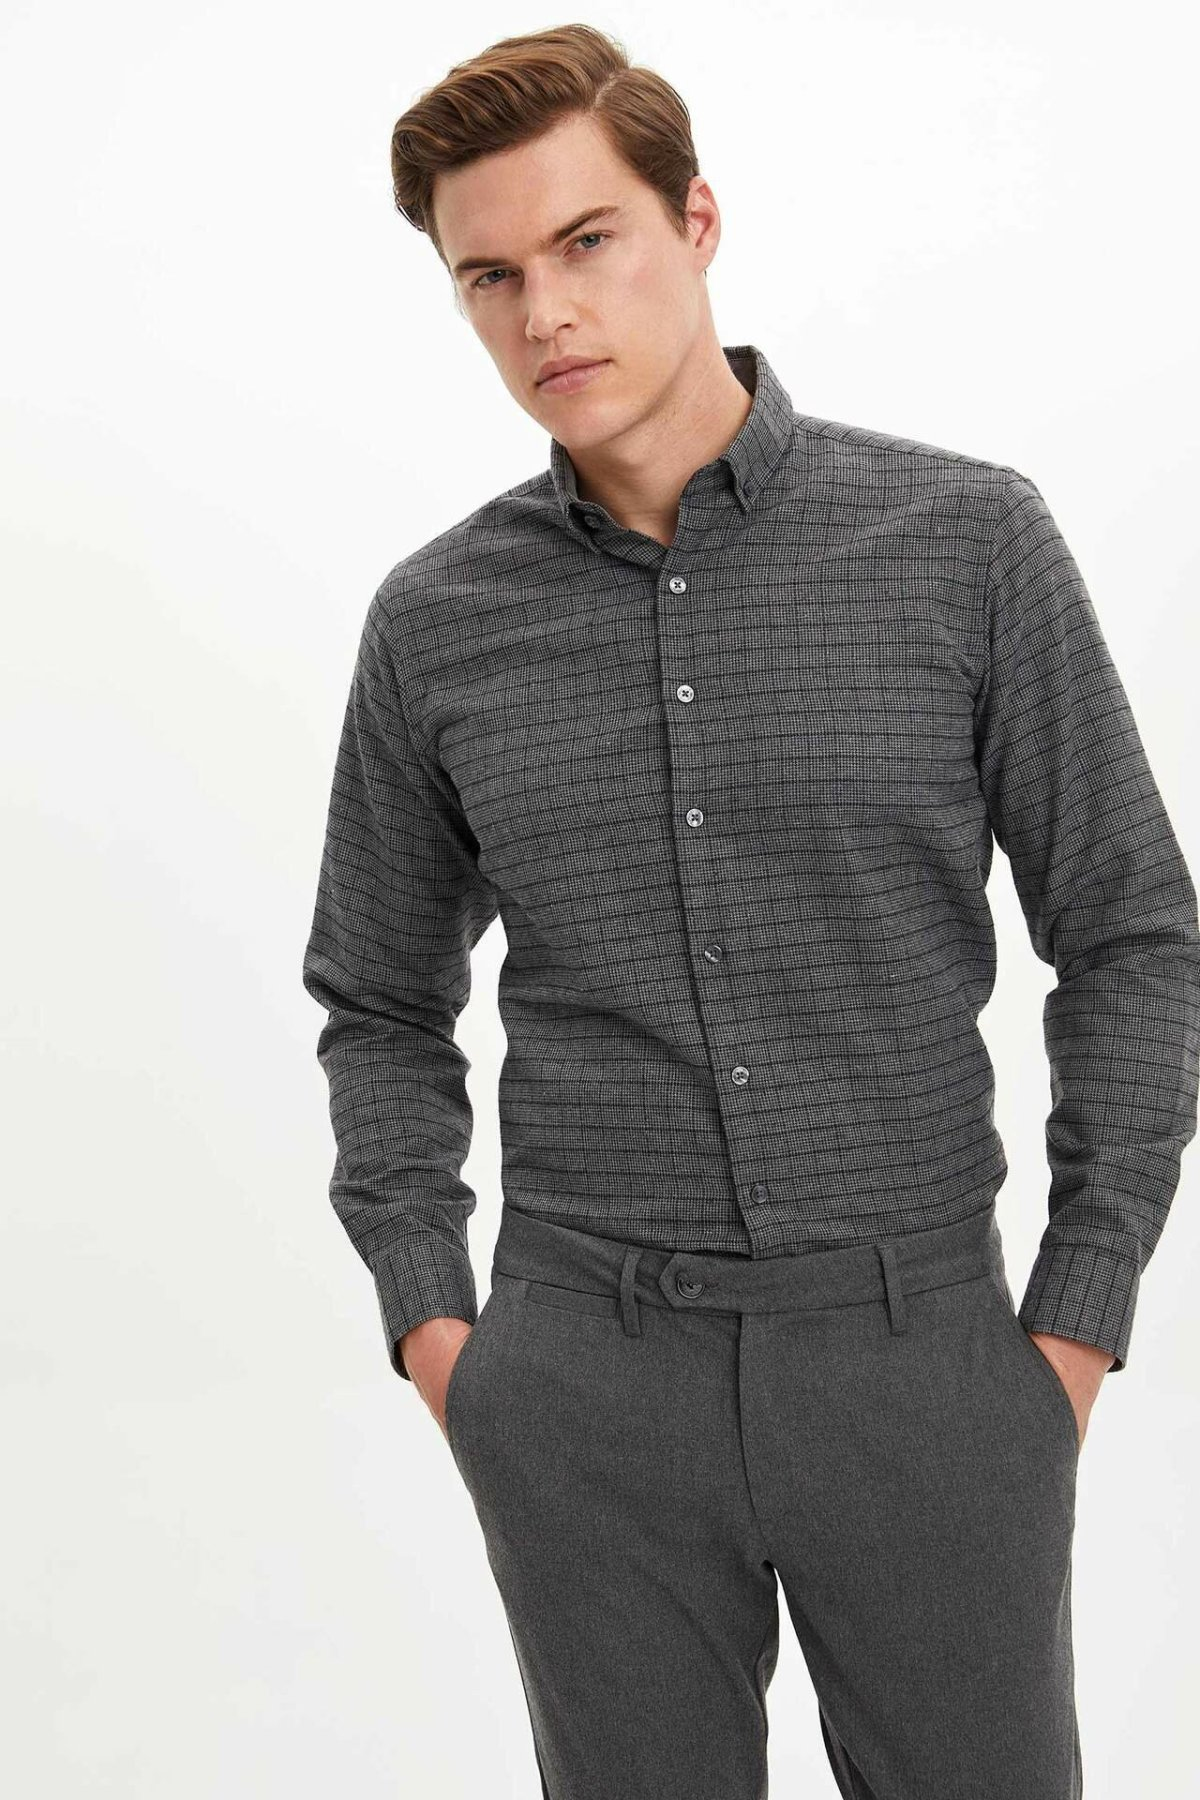 DeFacto Man Dark Color Striped Casual Smart Long Sleeve Shirt Professional Turn-down Collar Shirts -M2949AZ19WN